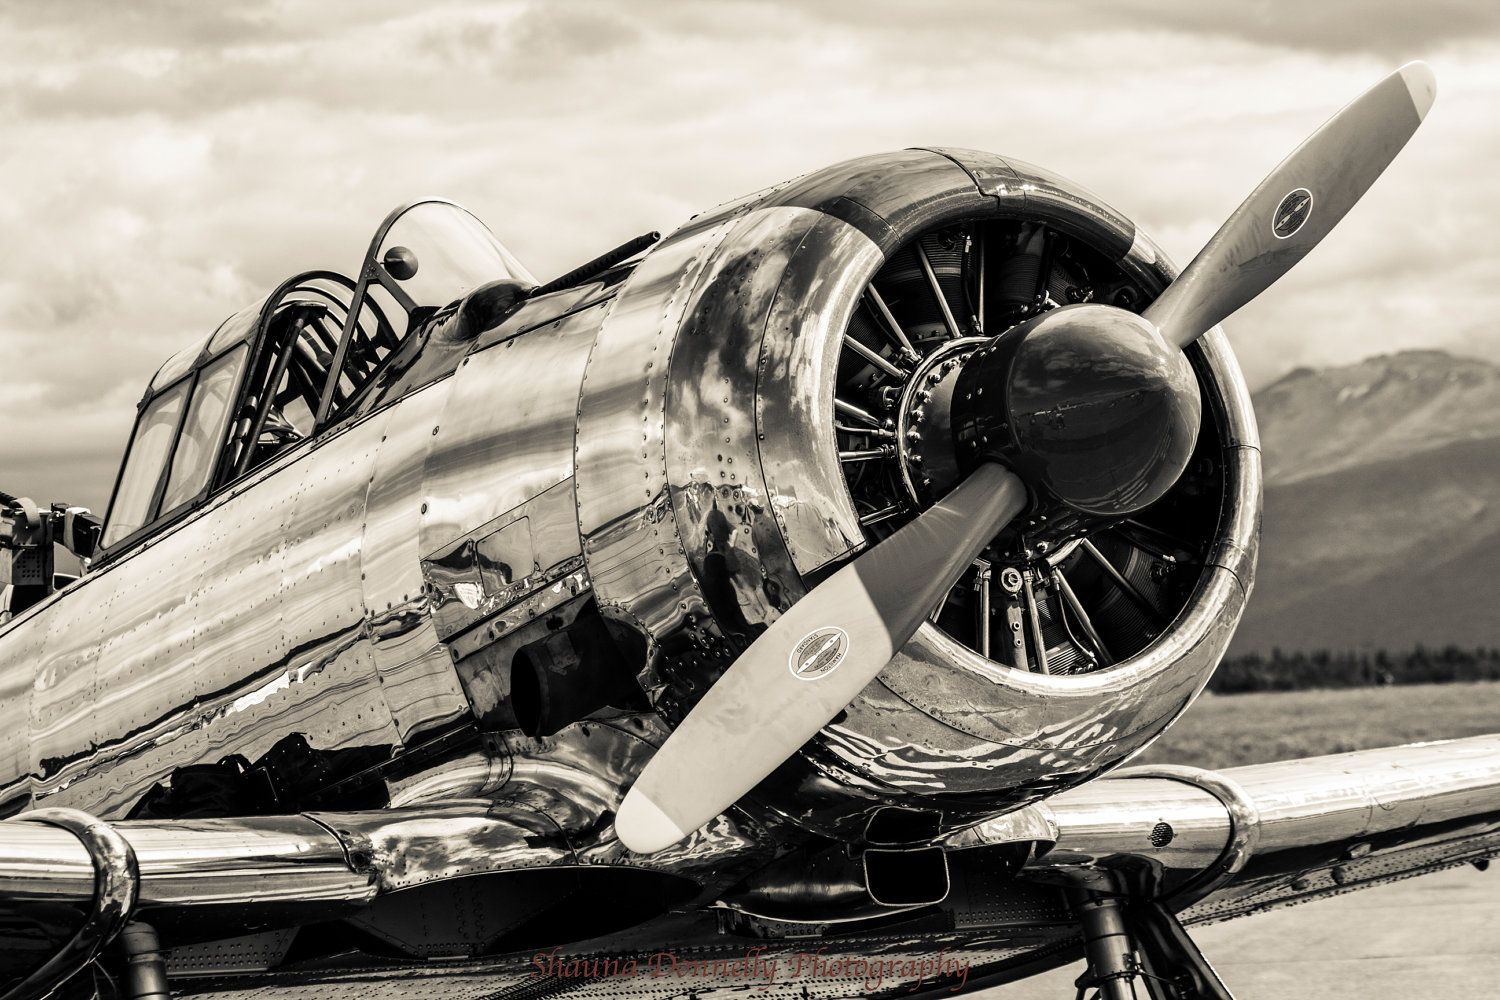 Old Planes Black And White 2361 Hd Wallpapers Images In